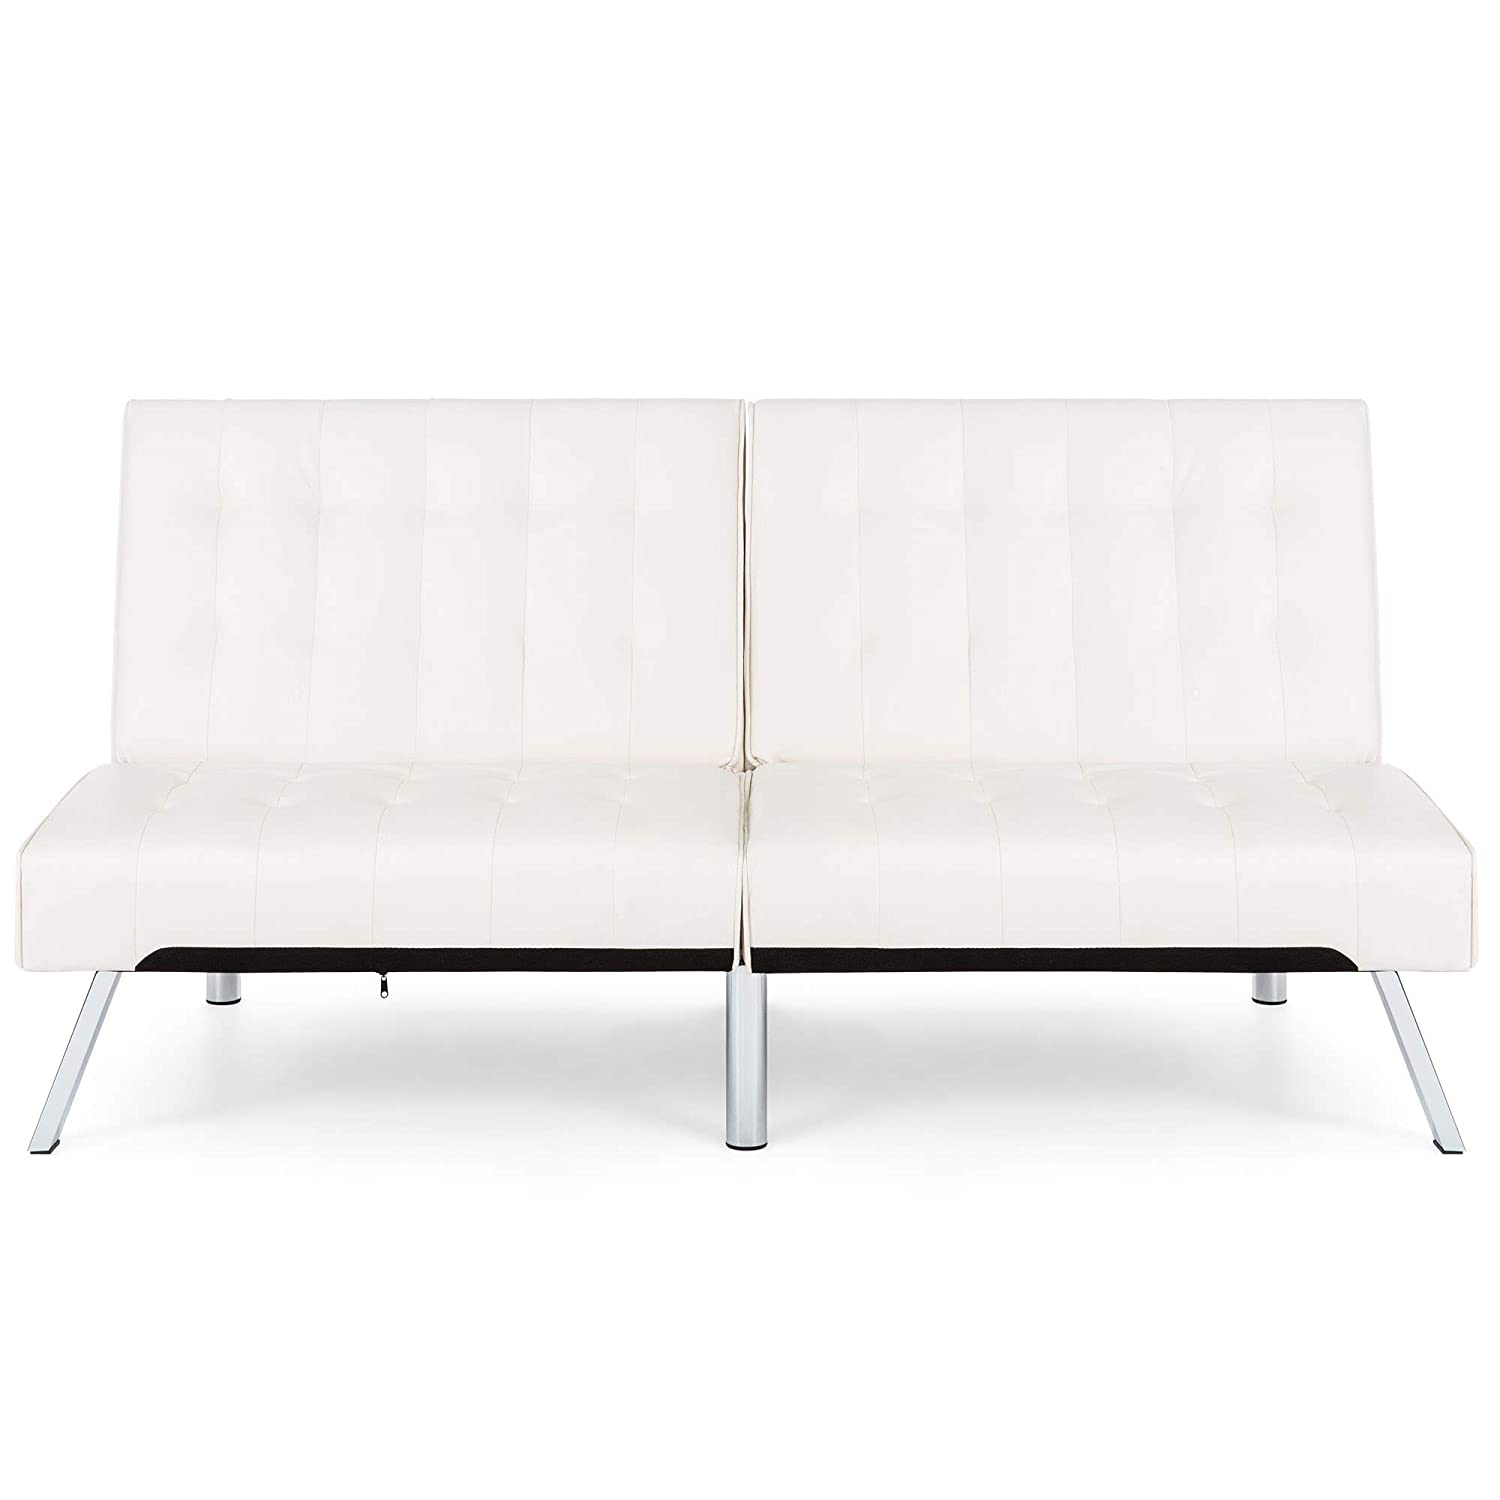 Amazon com best choice products modern leather futon sofa bed couch recliner lounger sleeper w chrome legs white home kitchen